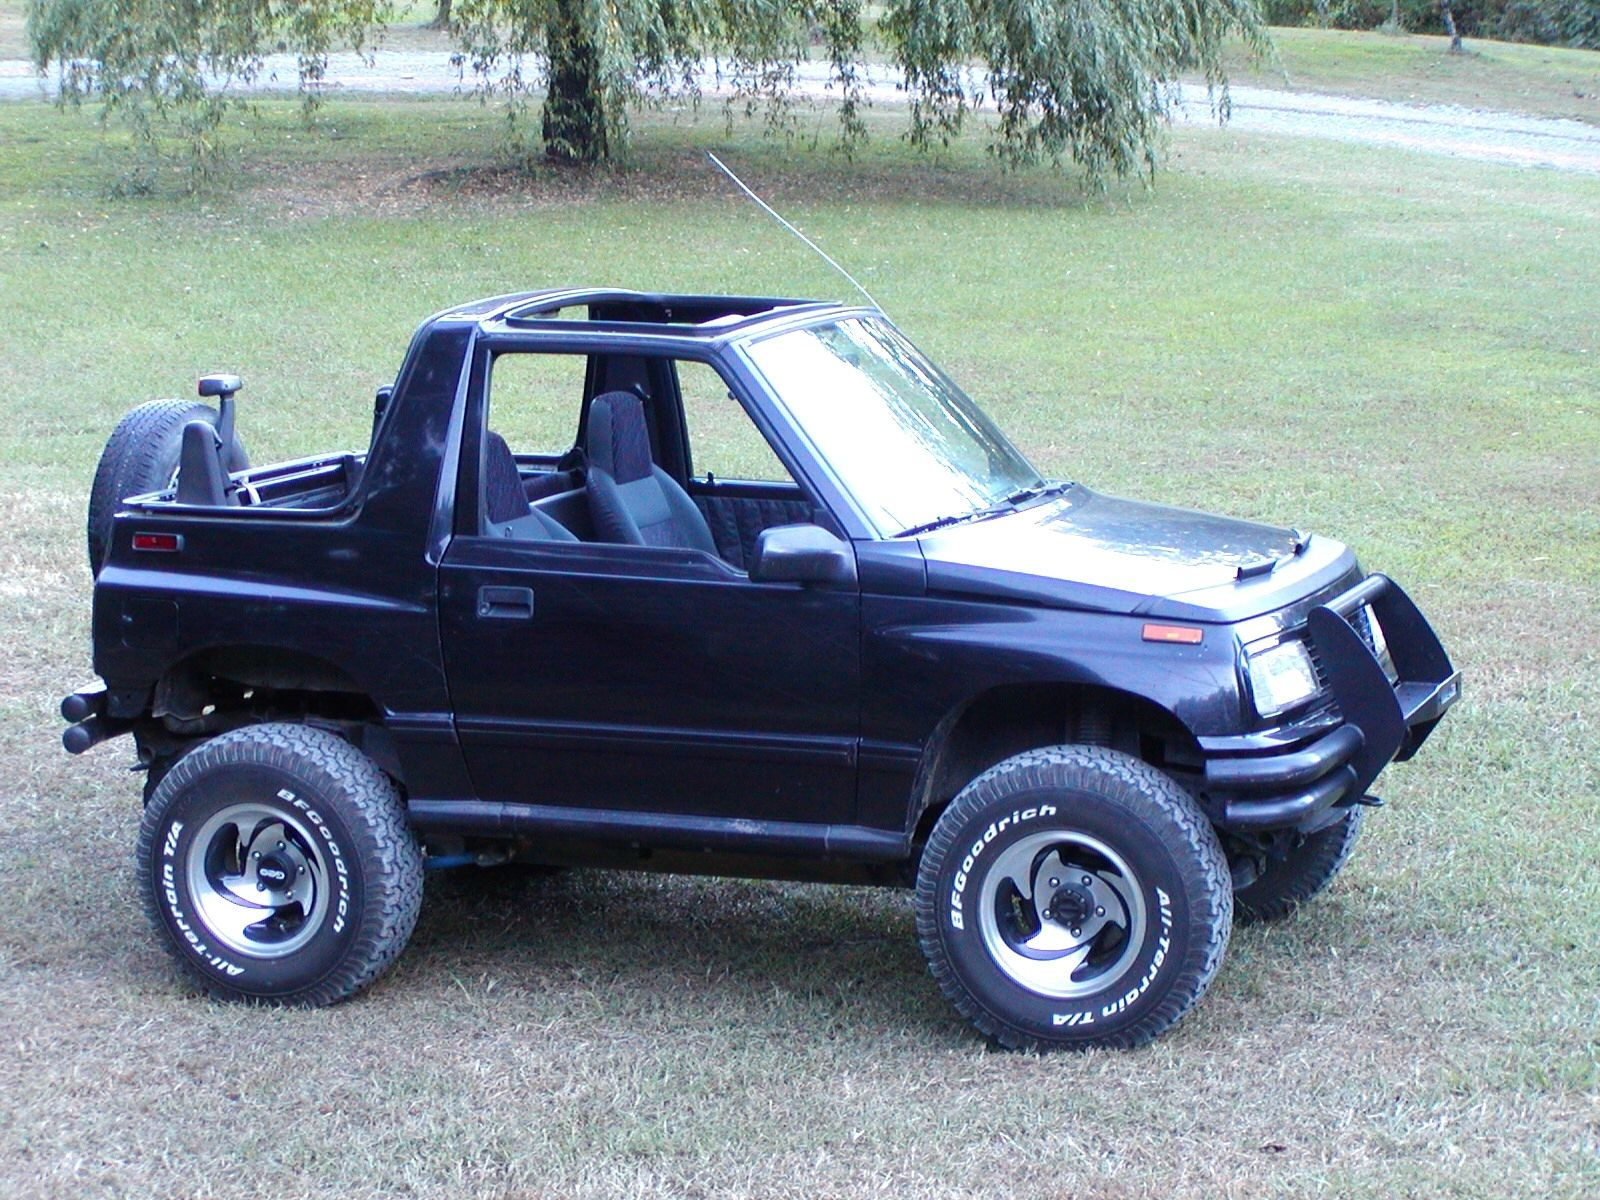 Longarch 1994 Geo Tracker Specs Photos Modification Info Hot Rods Cars Muscle Offroad Vehicles Hot Rods Cars